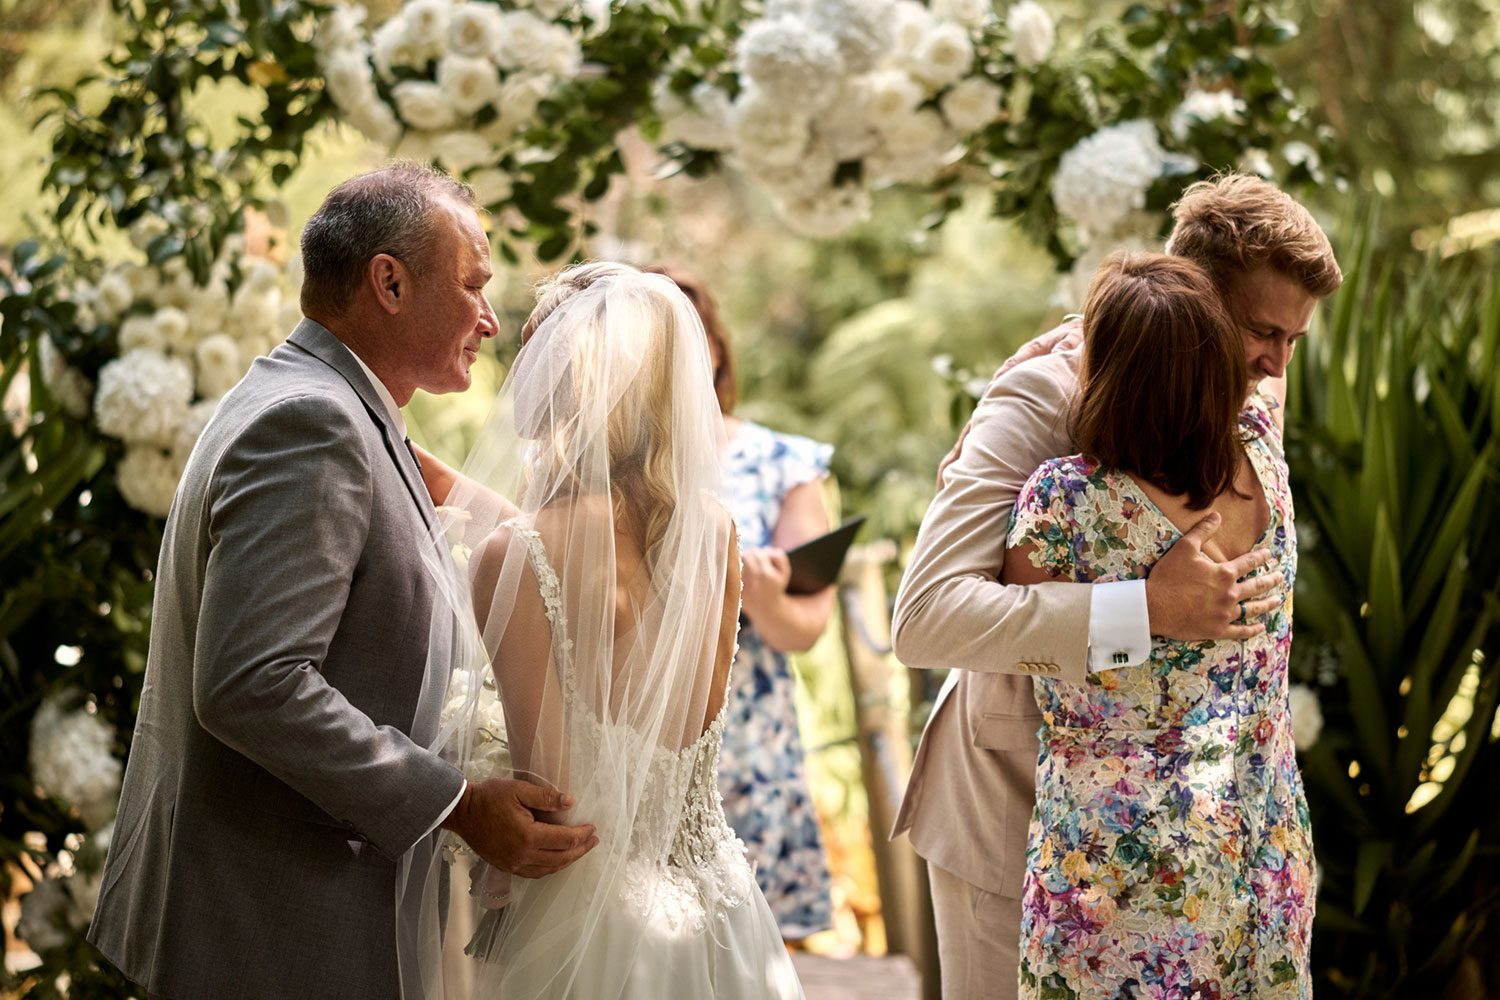 Bride wearing bespoke gown made of silk chiffon with delicate flower lace bodice by Vinka bridal designer Auckland - at alter groom hugging mother